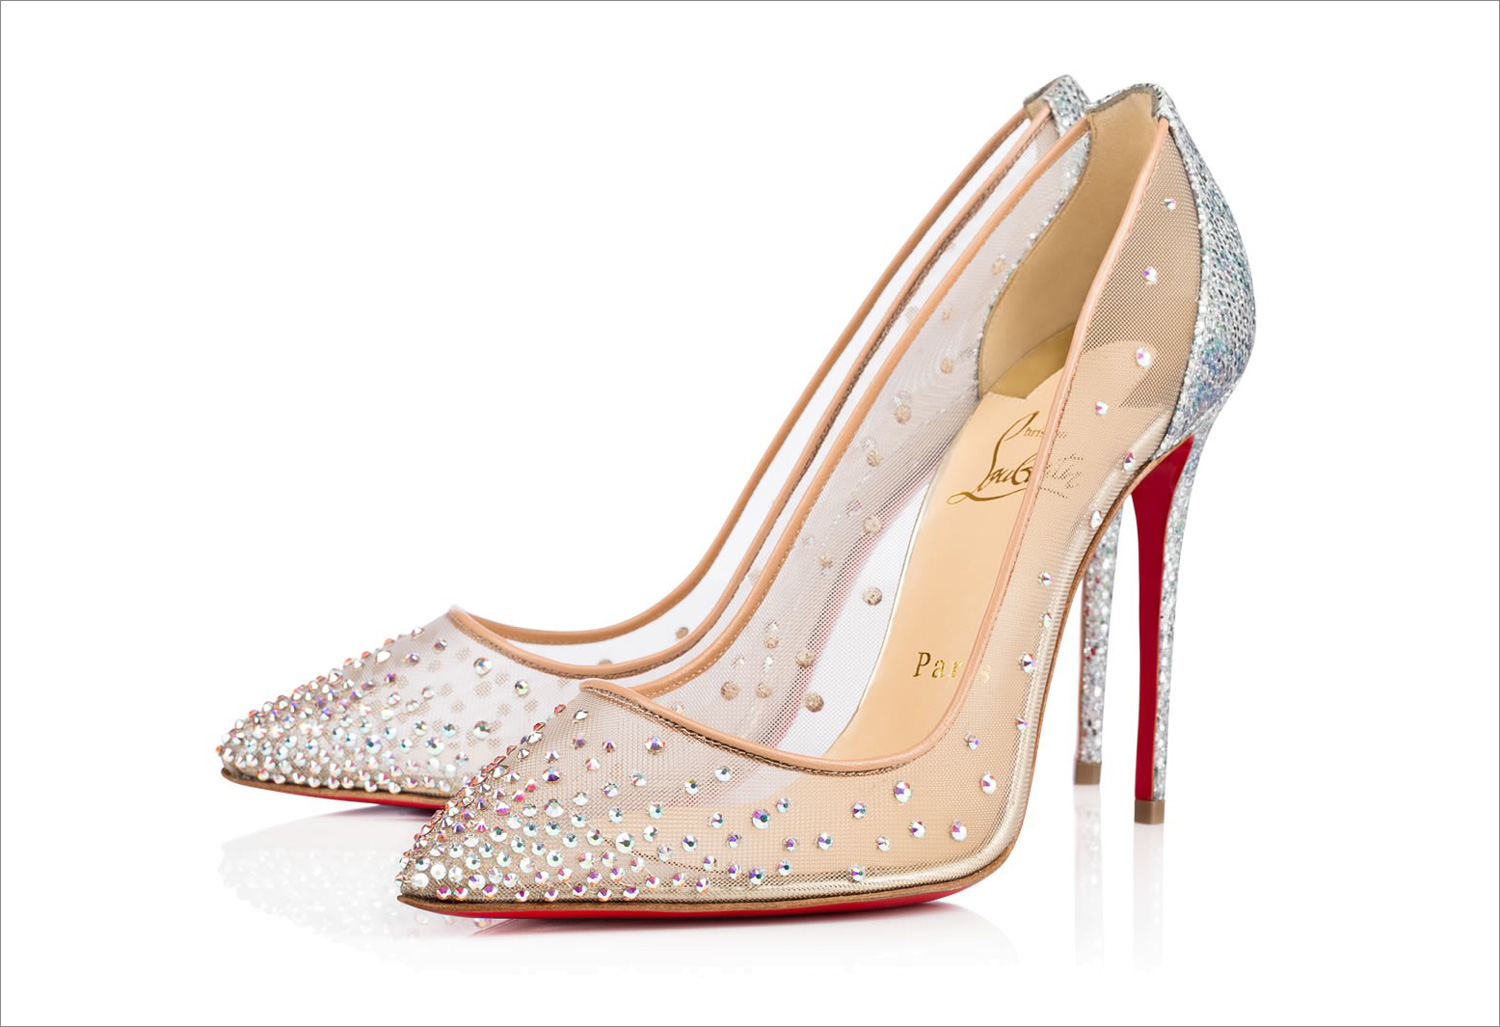 Christian Louboutin follies mesh pumps crystal rhinestones red bottom sole popular wedding heels